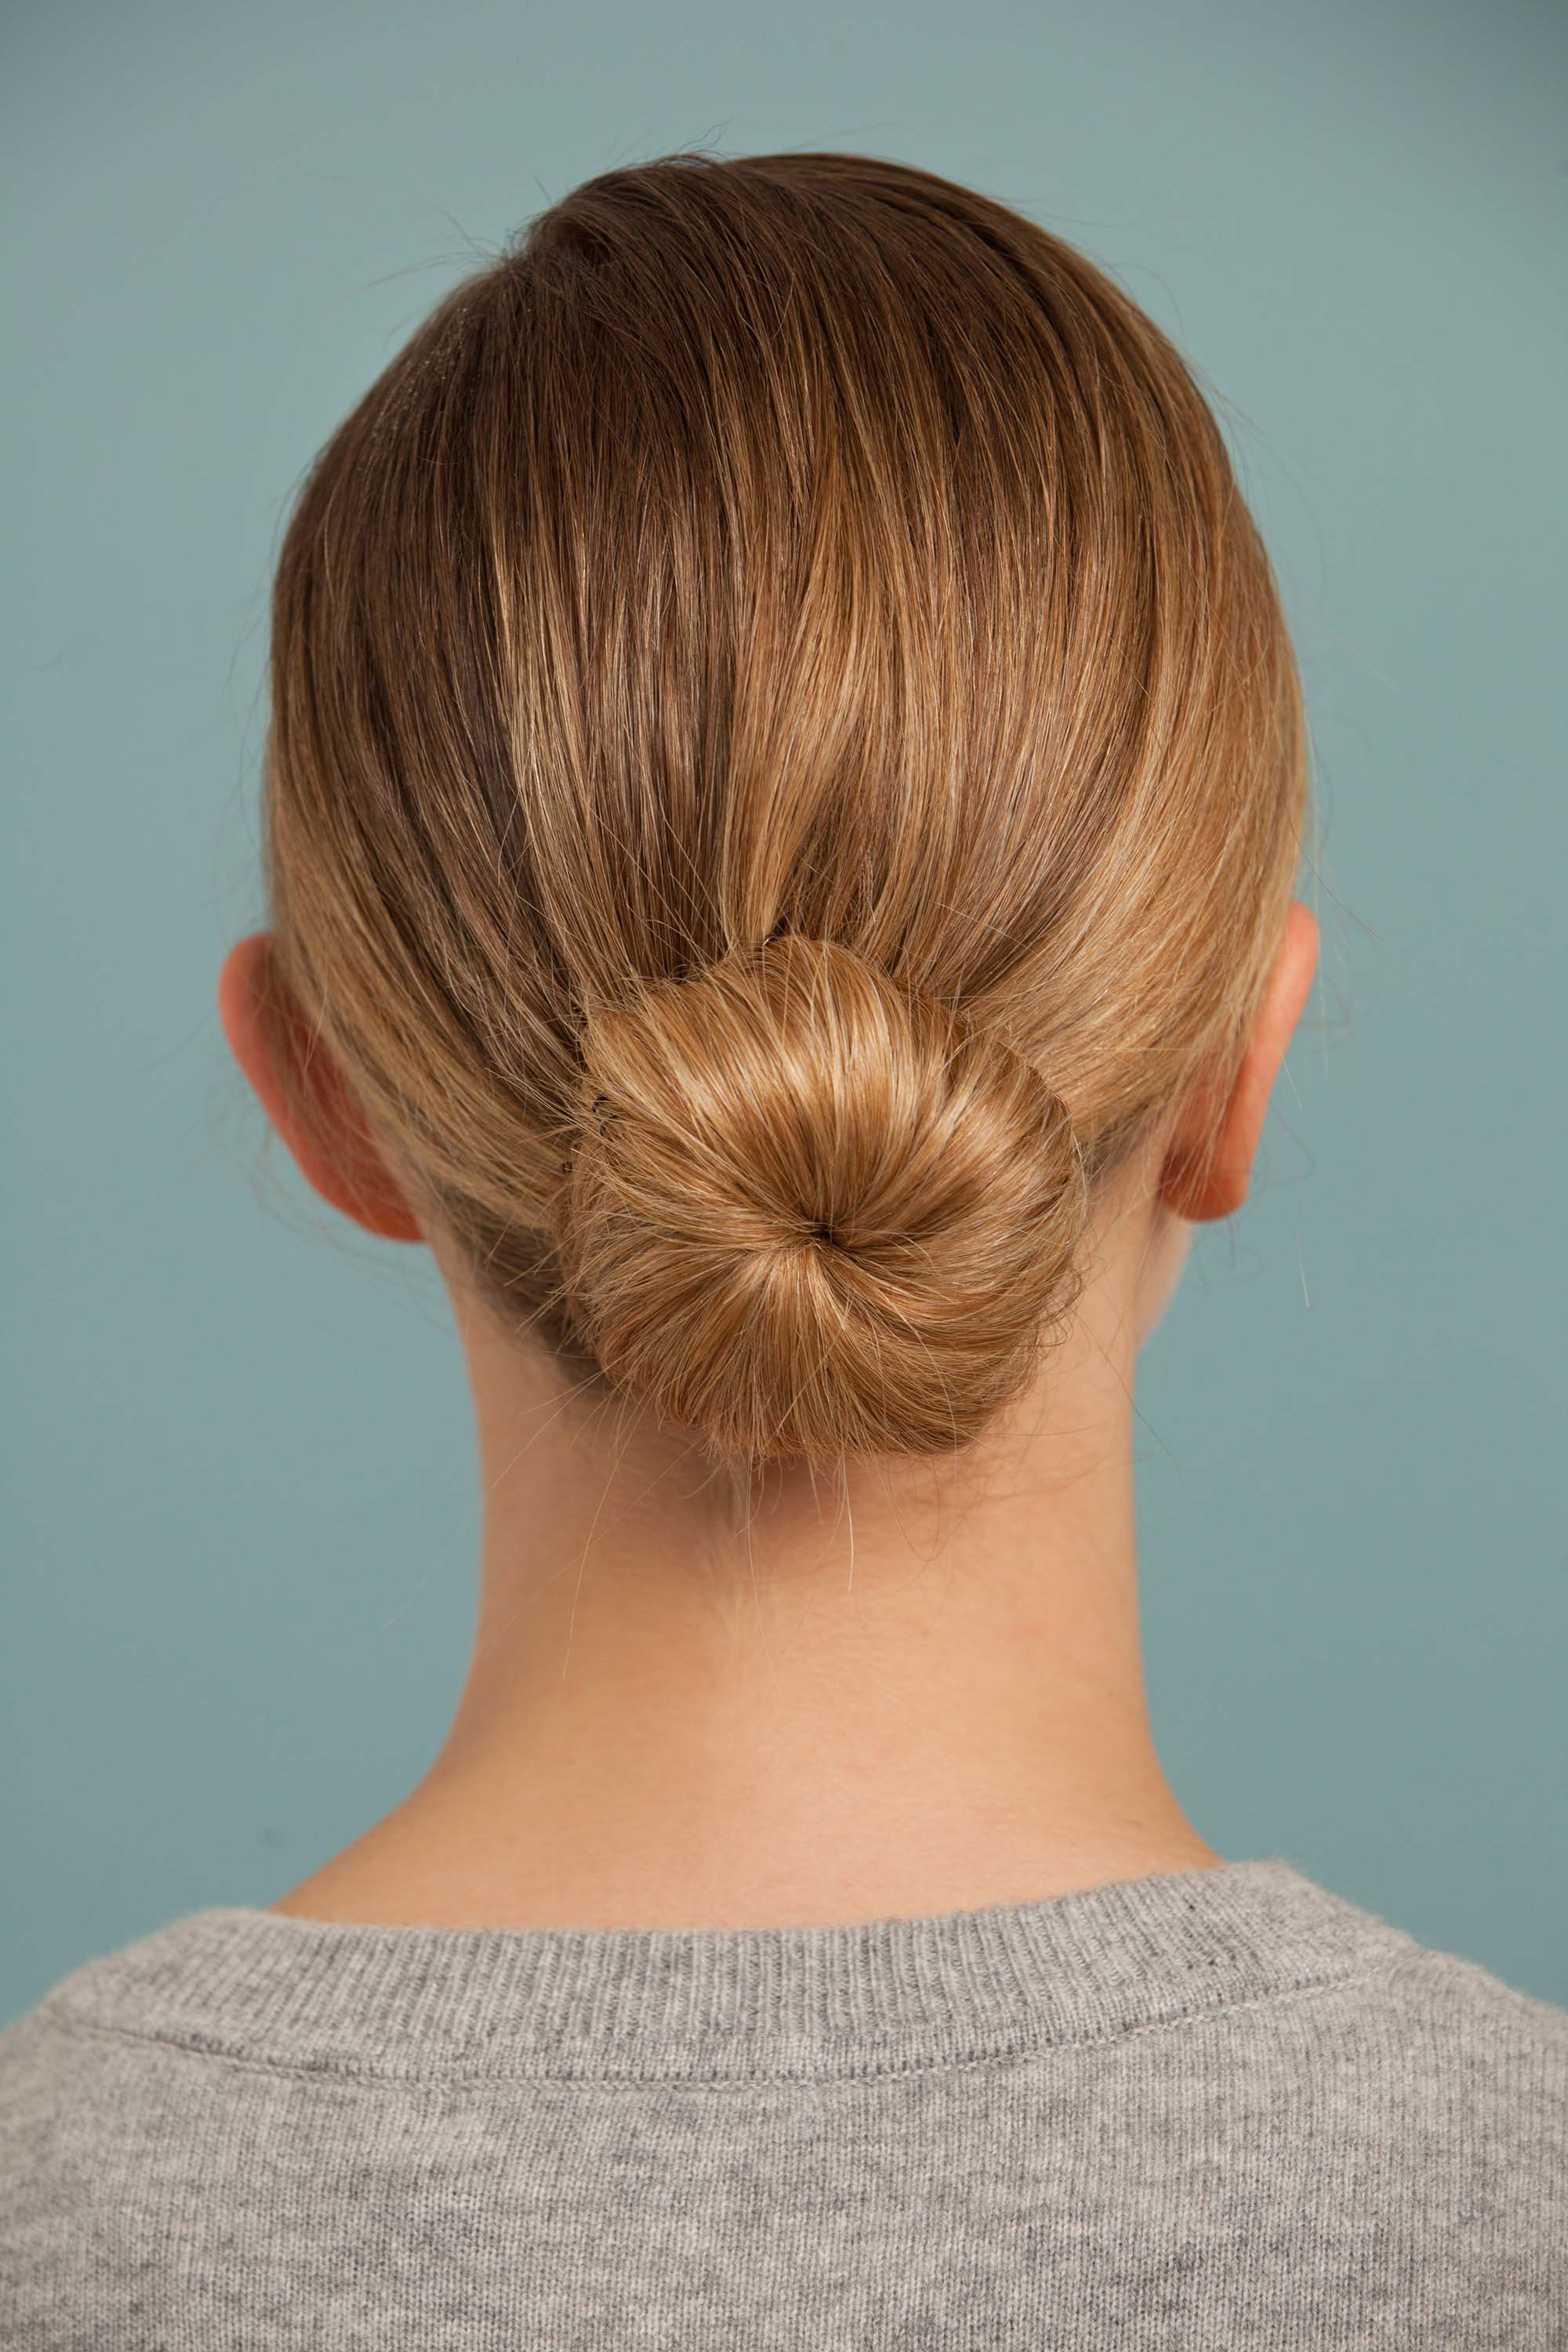 quick and easy hairstyles: All Things Hair - IMAGE - low bun